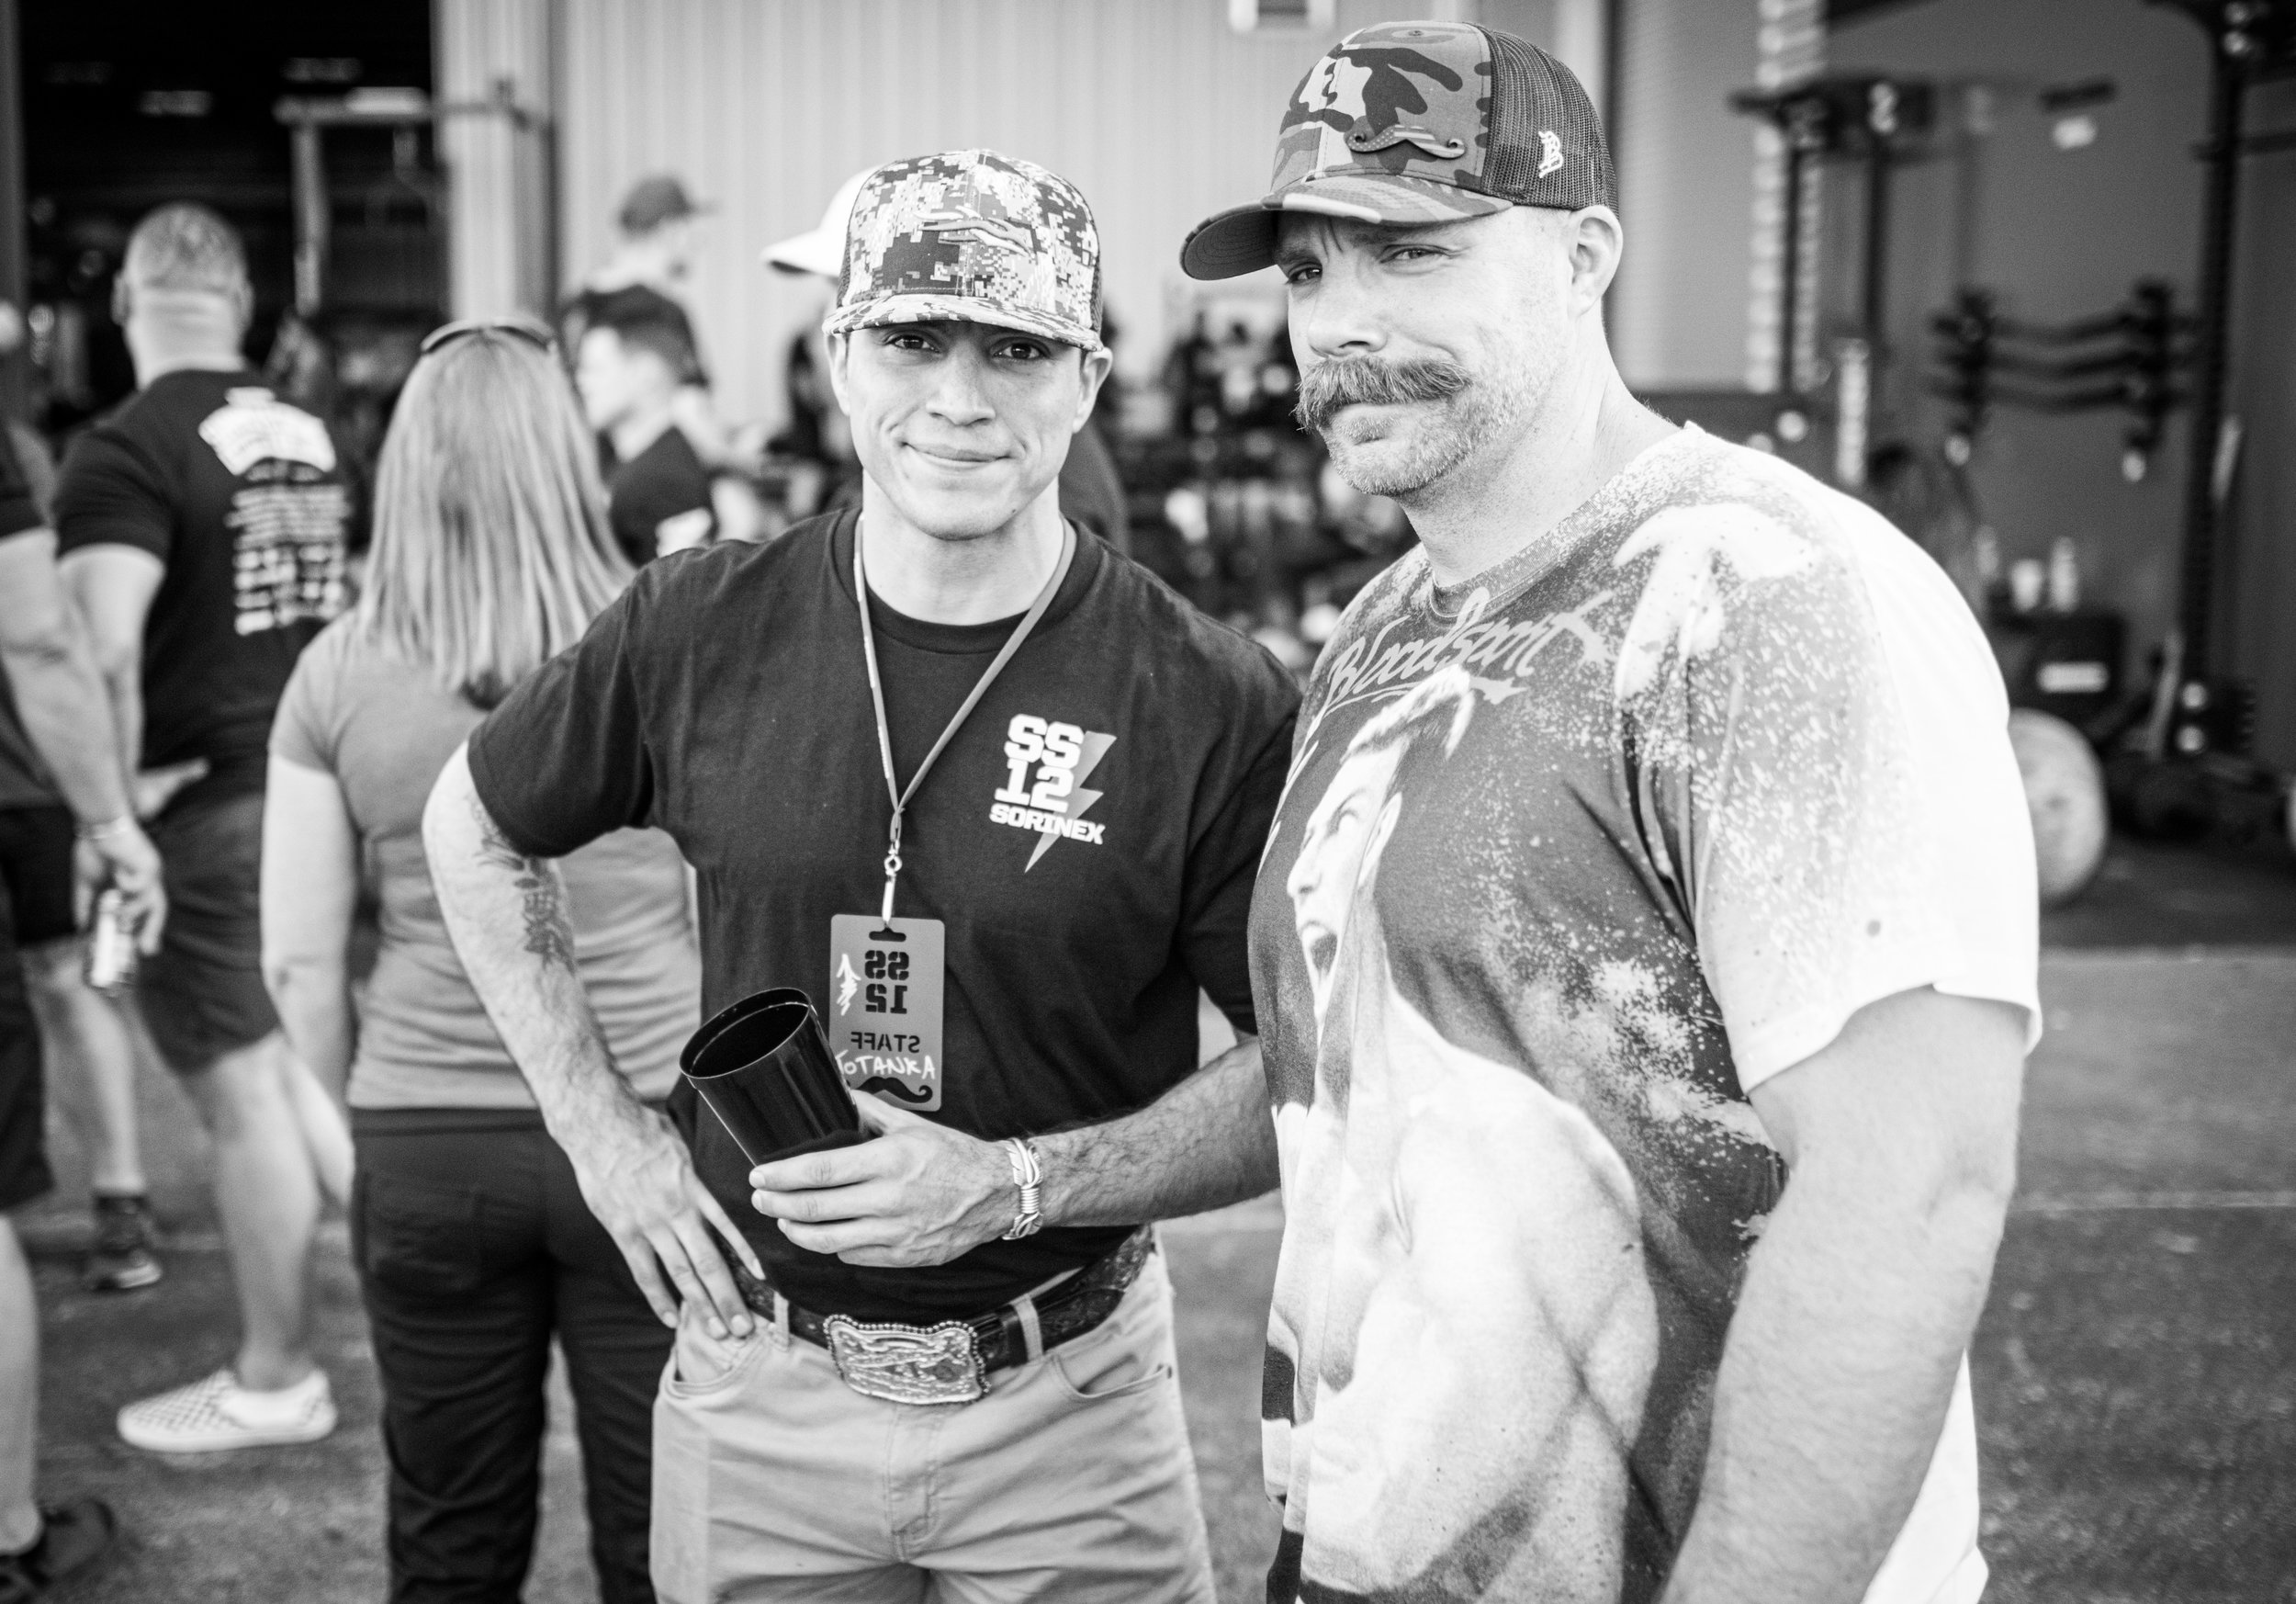 Brady and good friend, Adam Kuehl (IG: @adam_dutch) who was a Guest Speaker at Summer Strong and is the head of Government Training and Solutions at Sorinex.